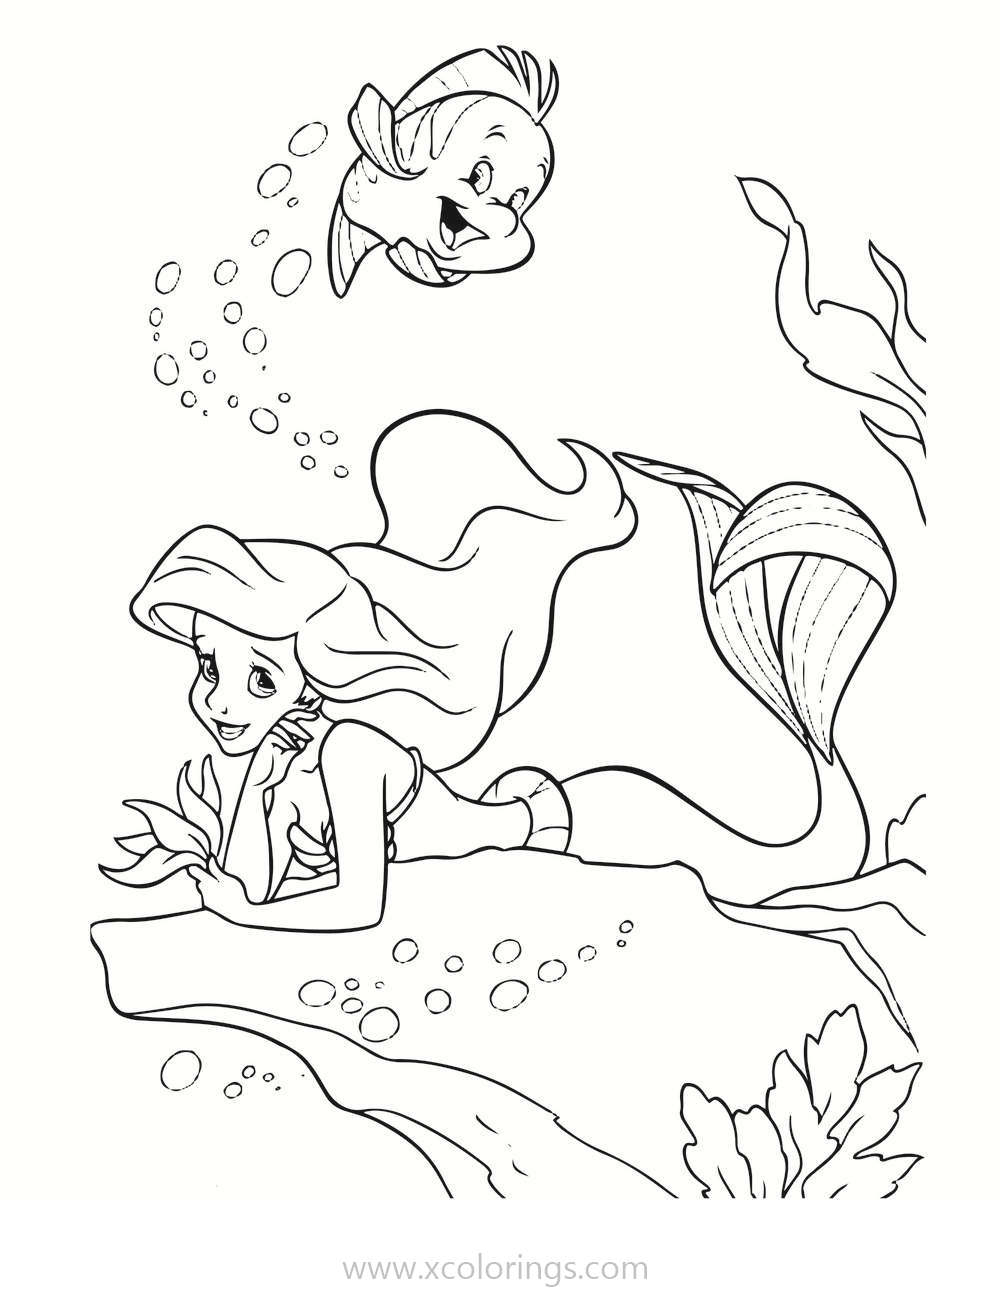 Princess Ariel And Flounder The Little Mermaid Coloring Pages Xcolorings Com